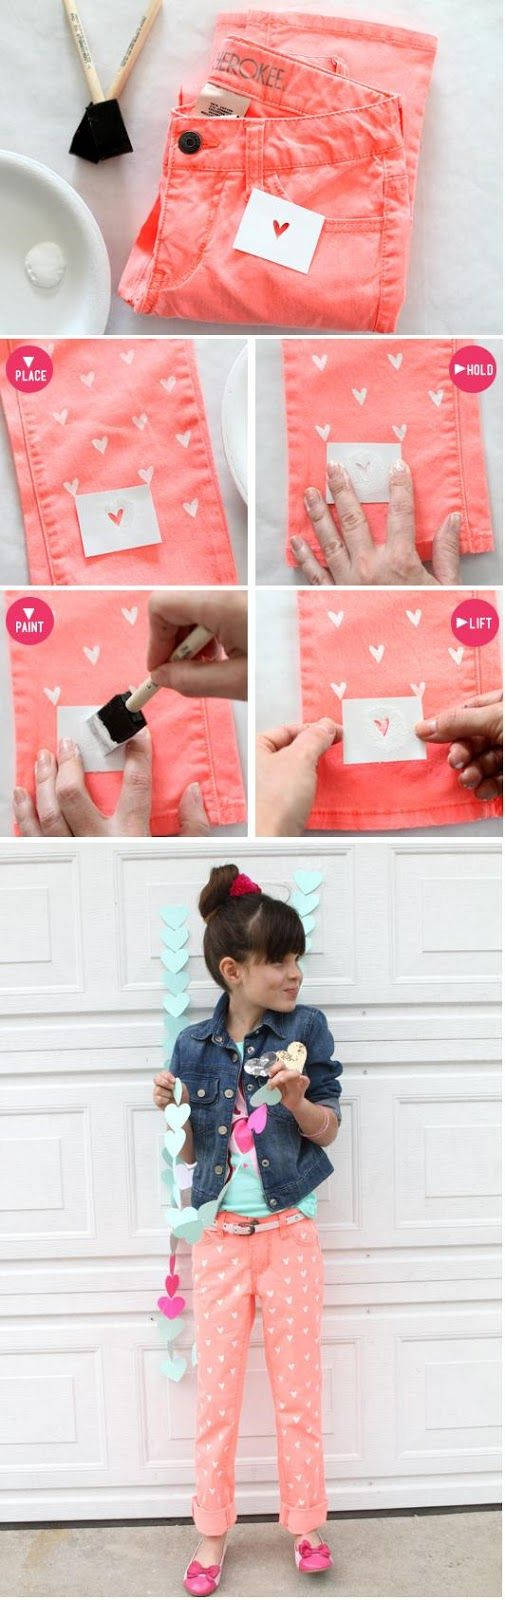 DIY Painted Heart Jeans, (wouldn't the paint wash off?)